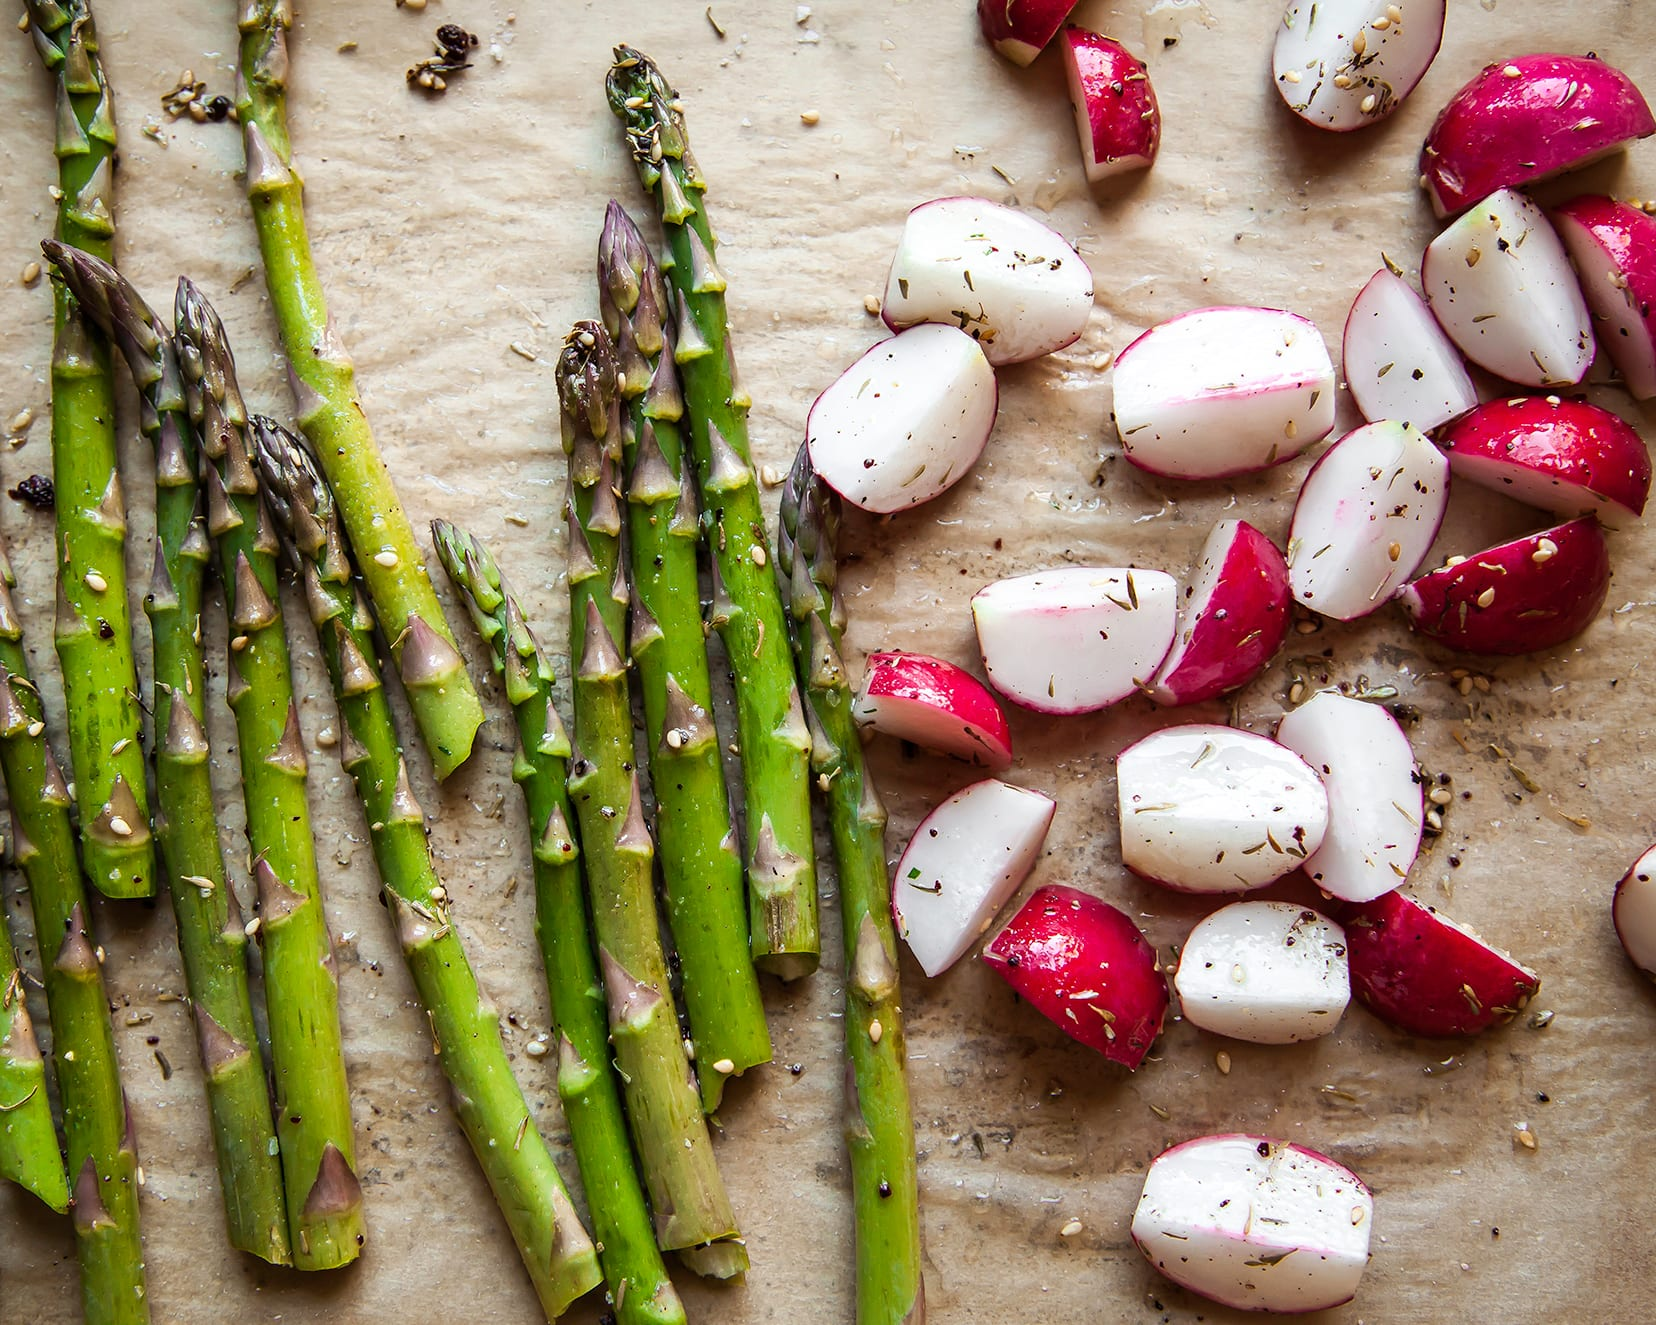 Image shows roasted asparagus and radishes on top of brown parchment paper.